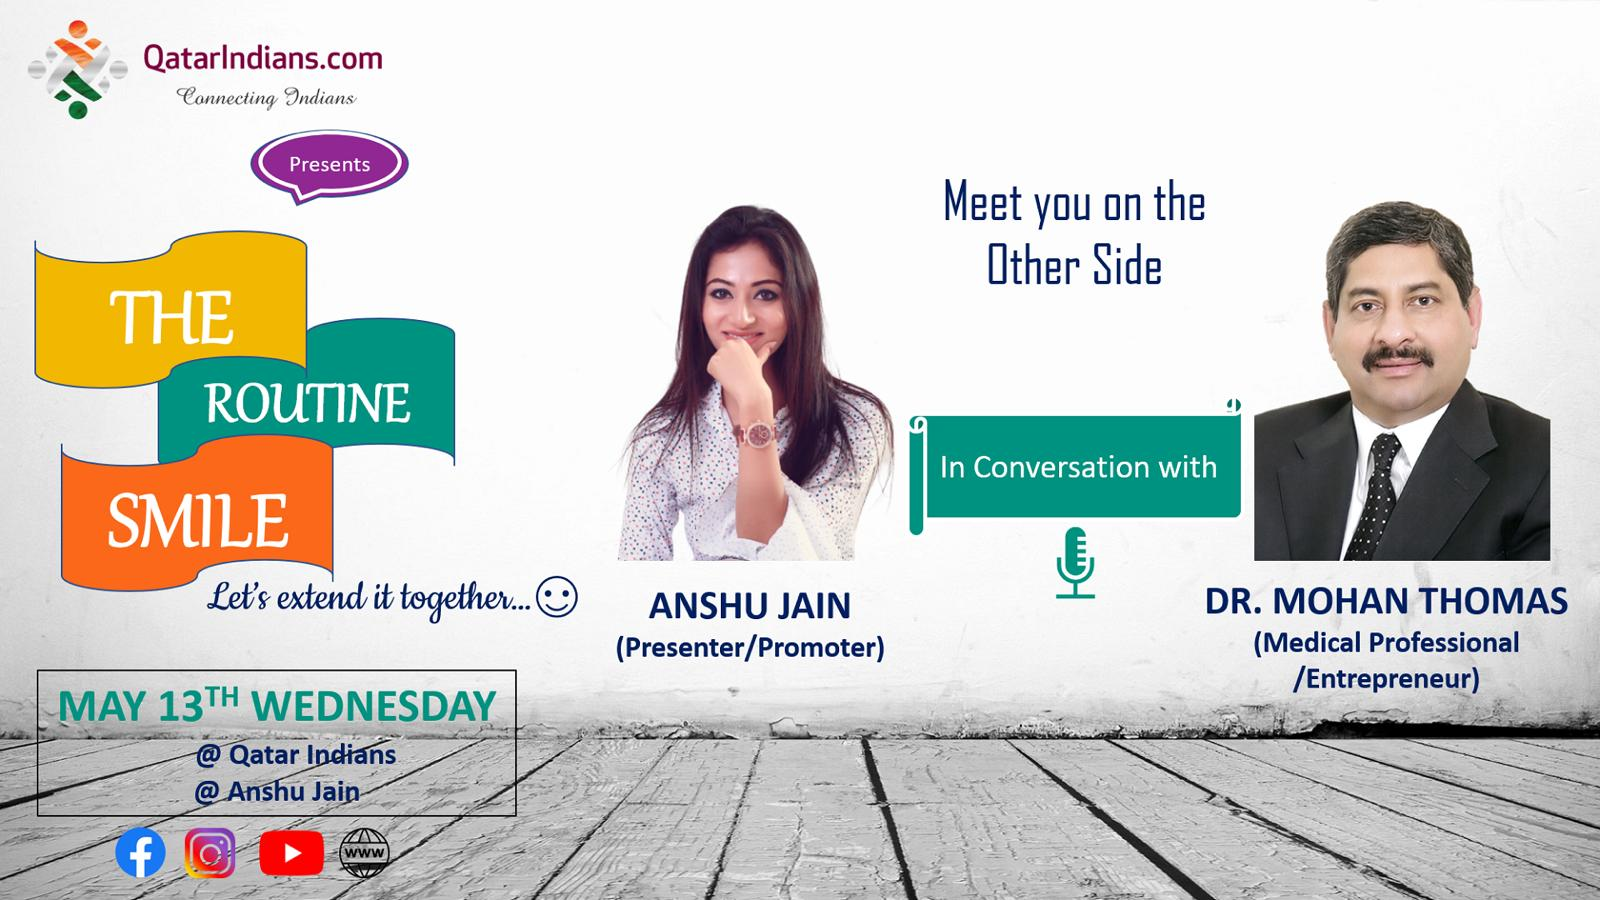 Meet your host Anshu Jain in conversation with the great humanitarian and giant entrepreneur Dr. Mohan Thomas | QatarIndians presents The Routine Smile